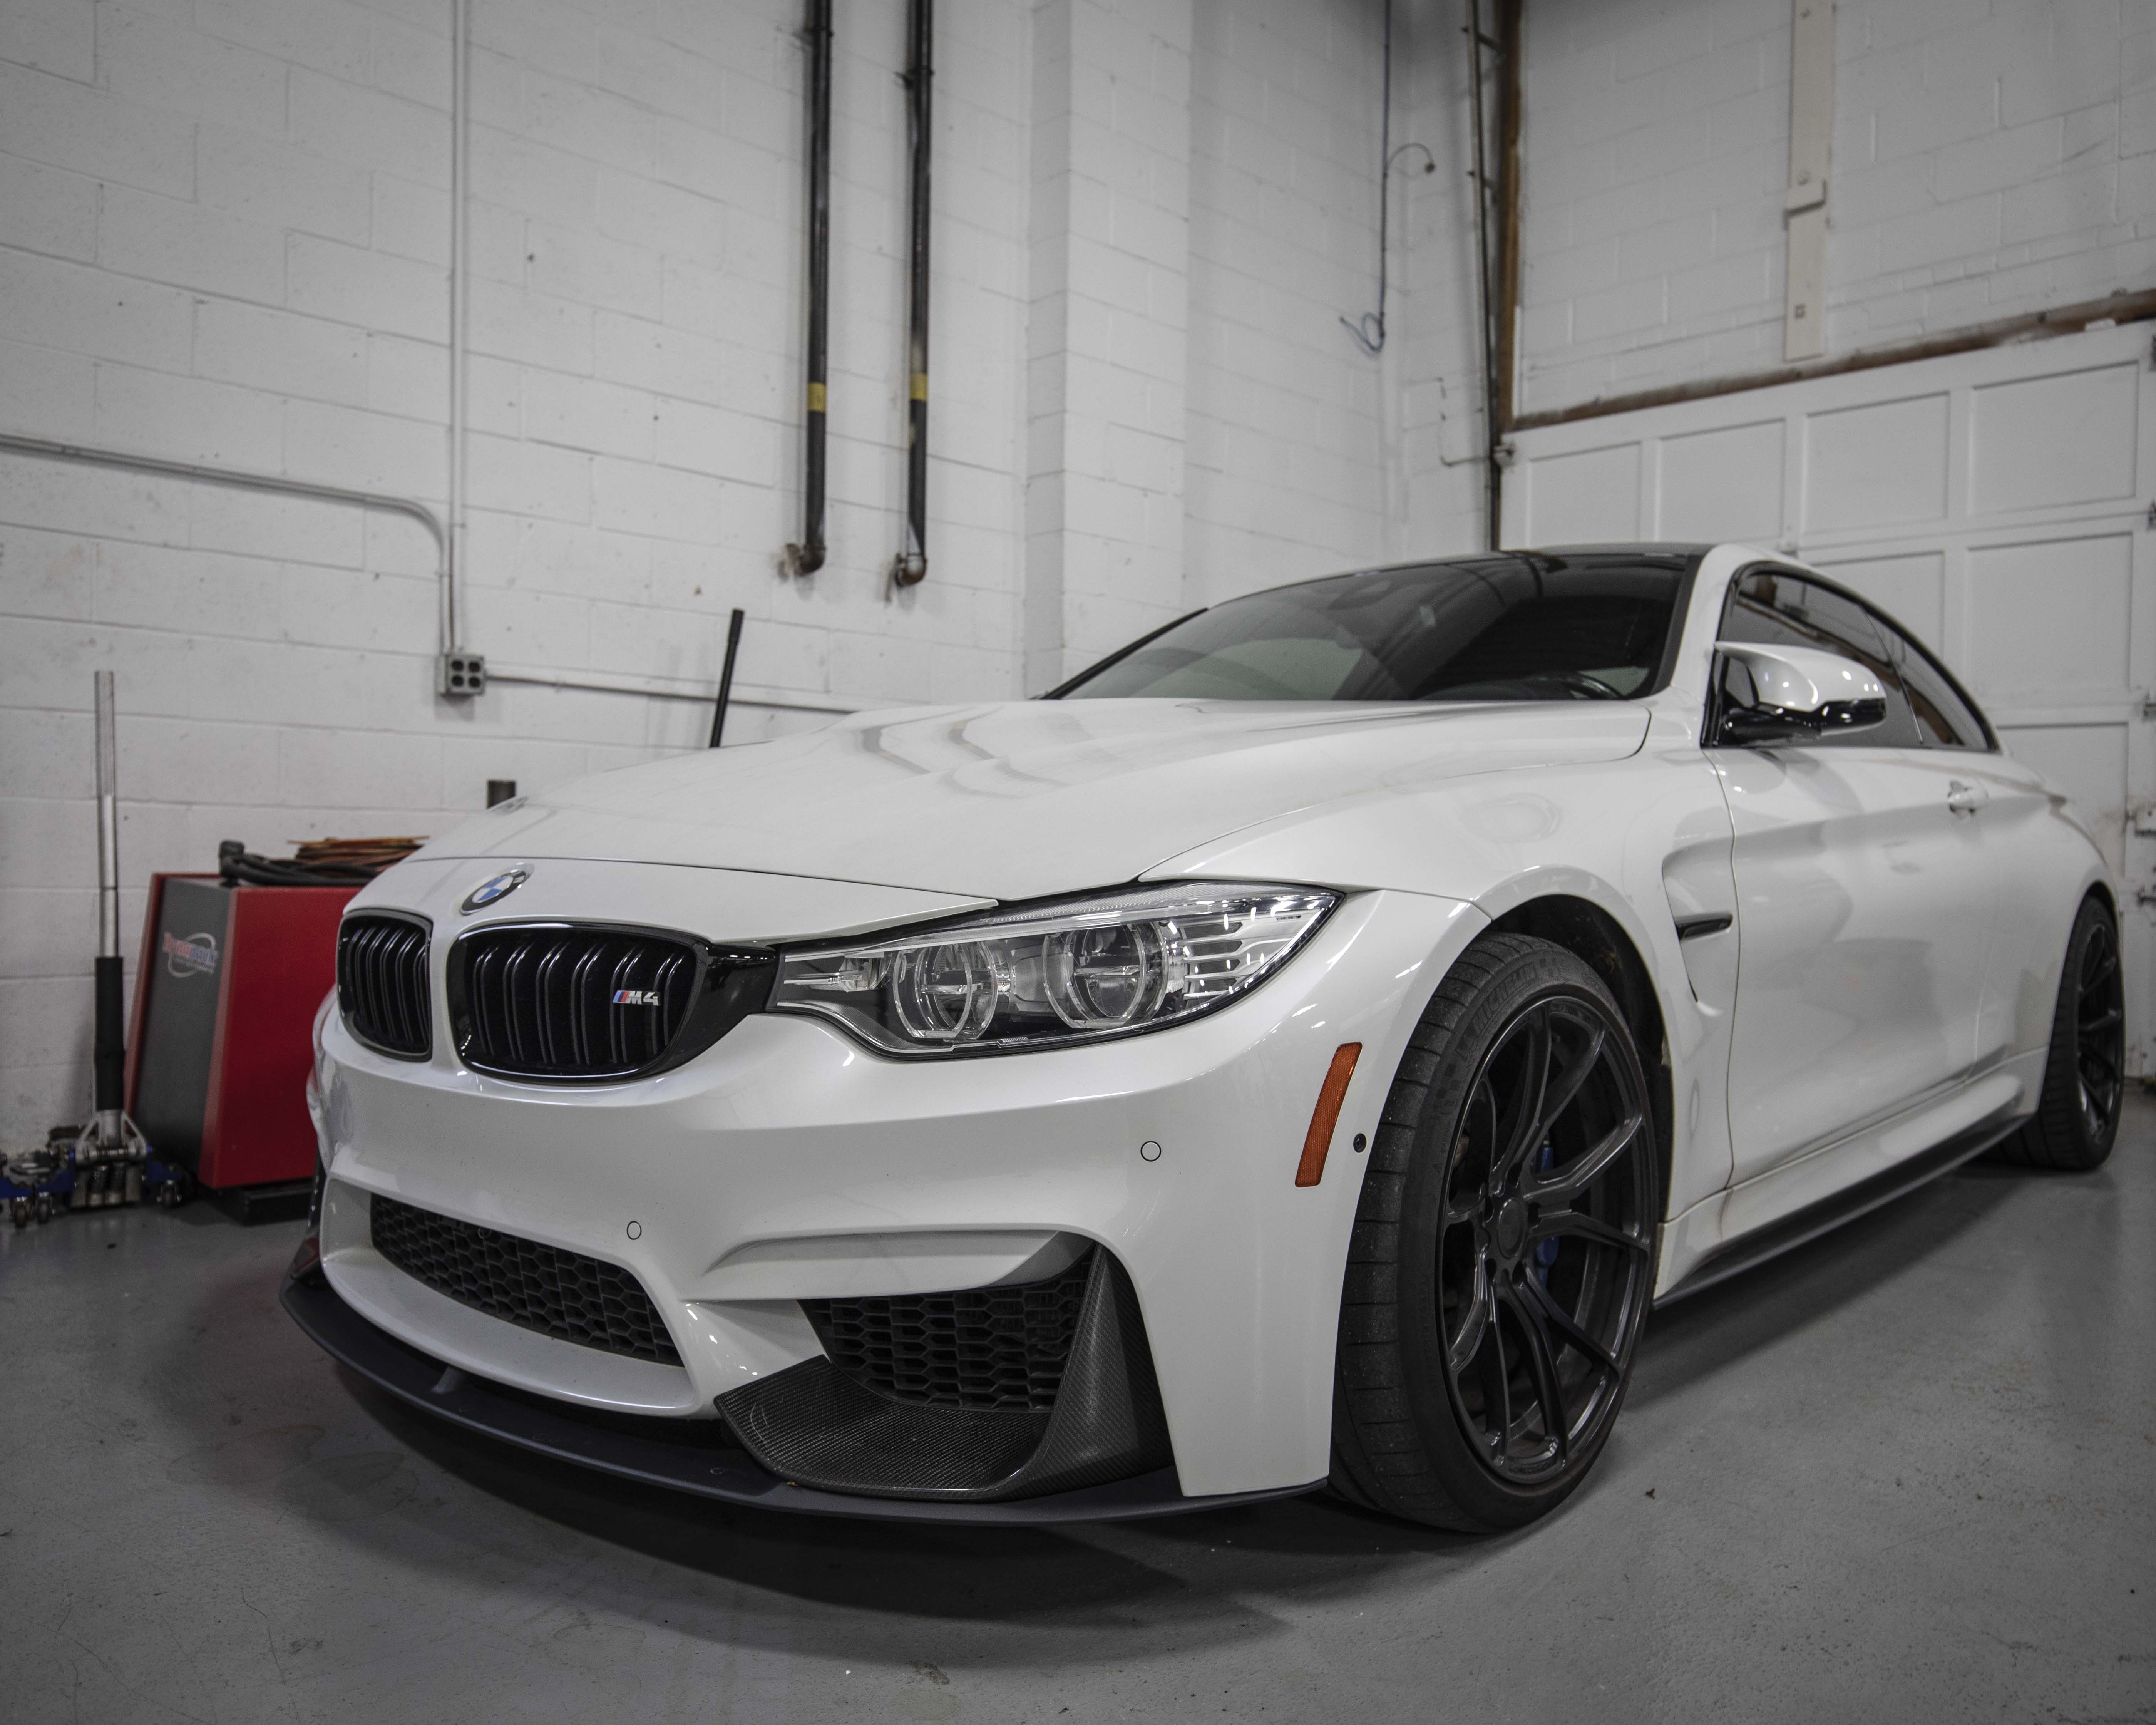 Tuning a BMW M4 with BootMod3 - 100+ WHP Gains! - Touge Tuning